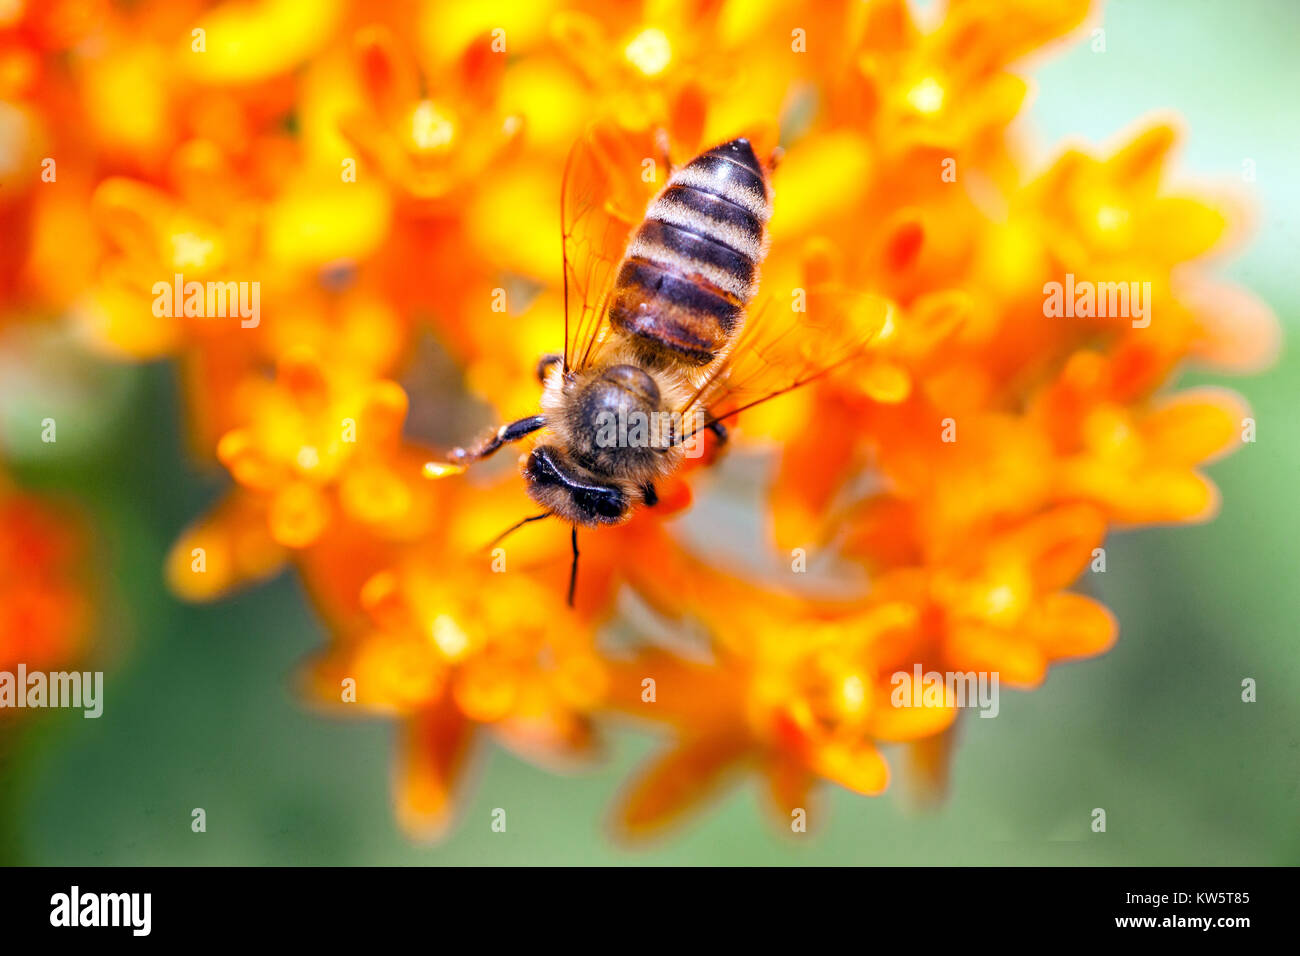 Close up Bee on flower Butterfly weed plant - Asclepias tuberosa, Milkweed - Stock Image